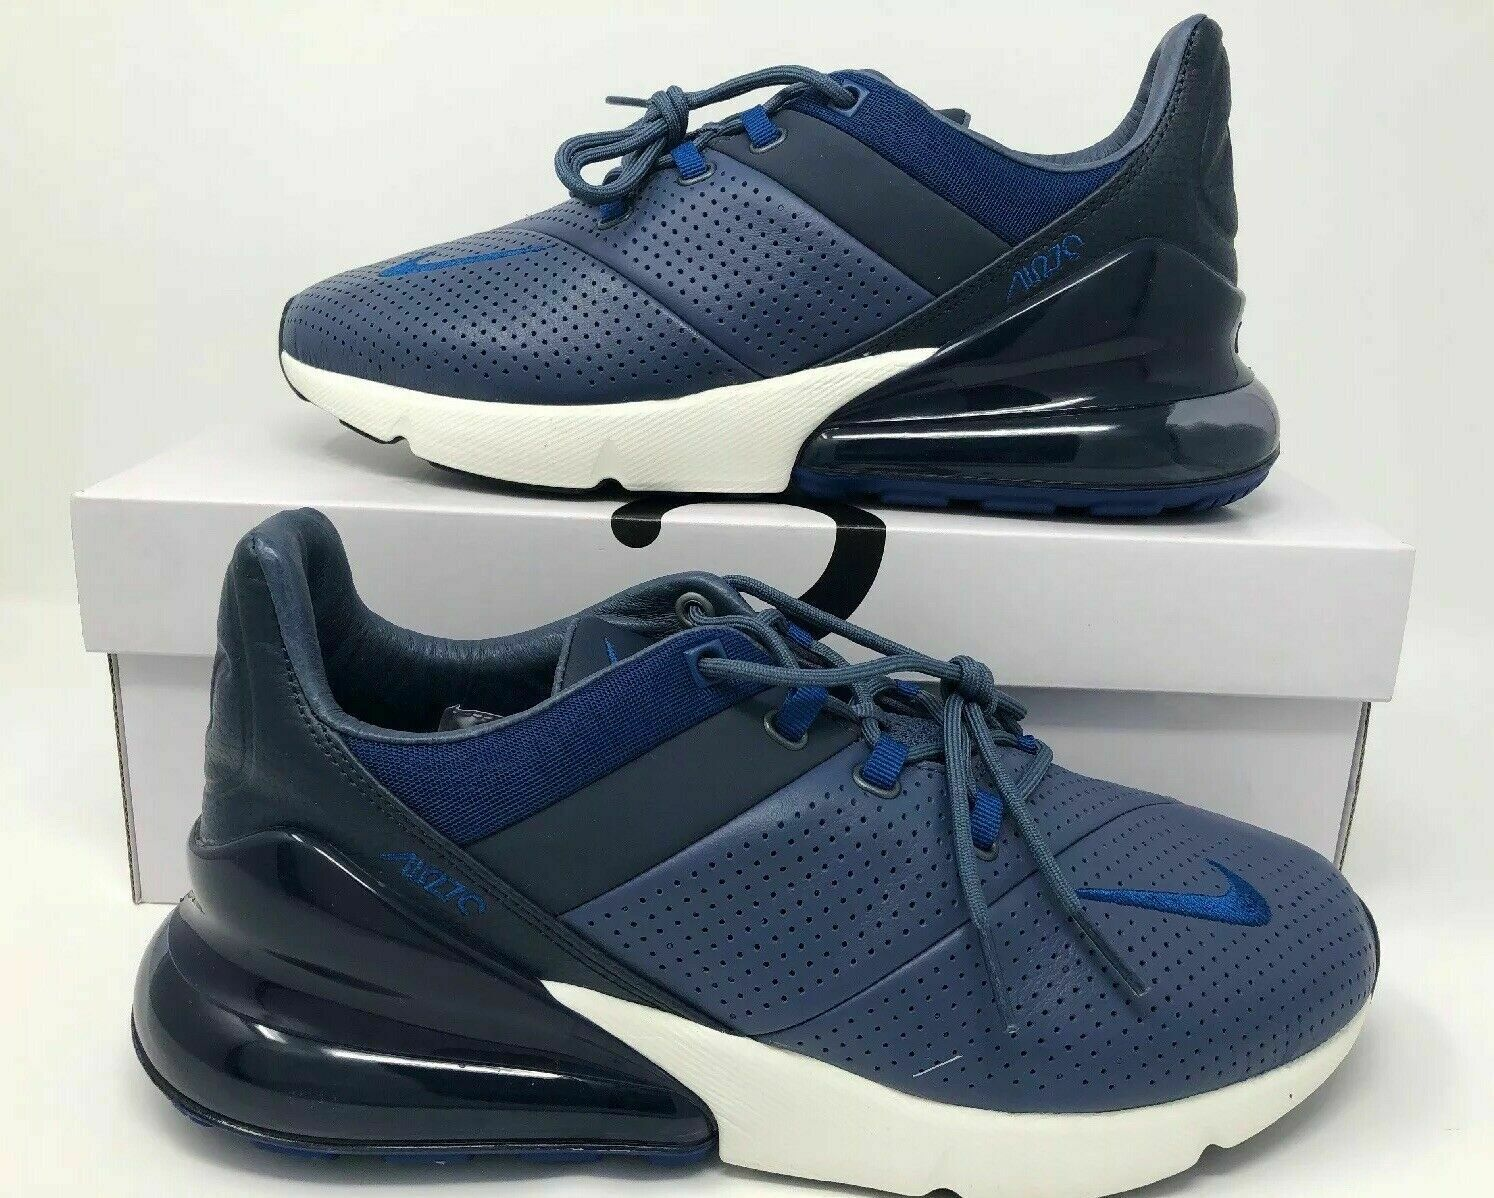 New Nike Air Max 270 Premium Size 12 Leather Diffused blueee Gym blueee AO8283 400